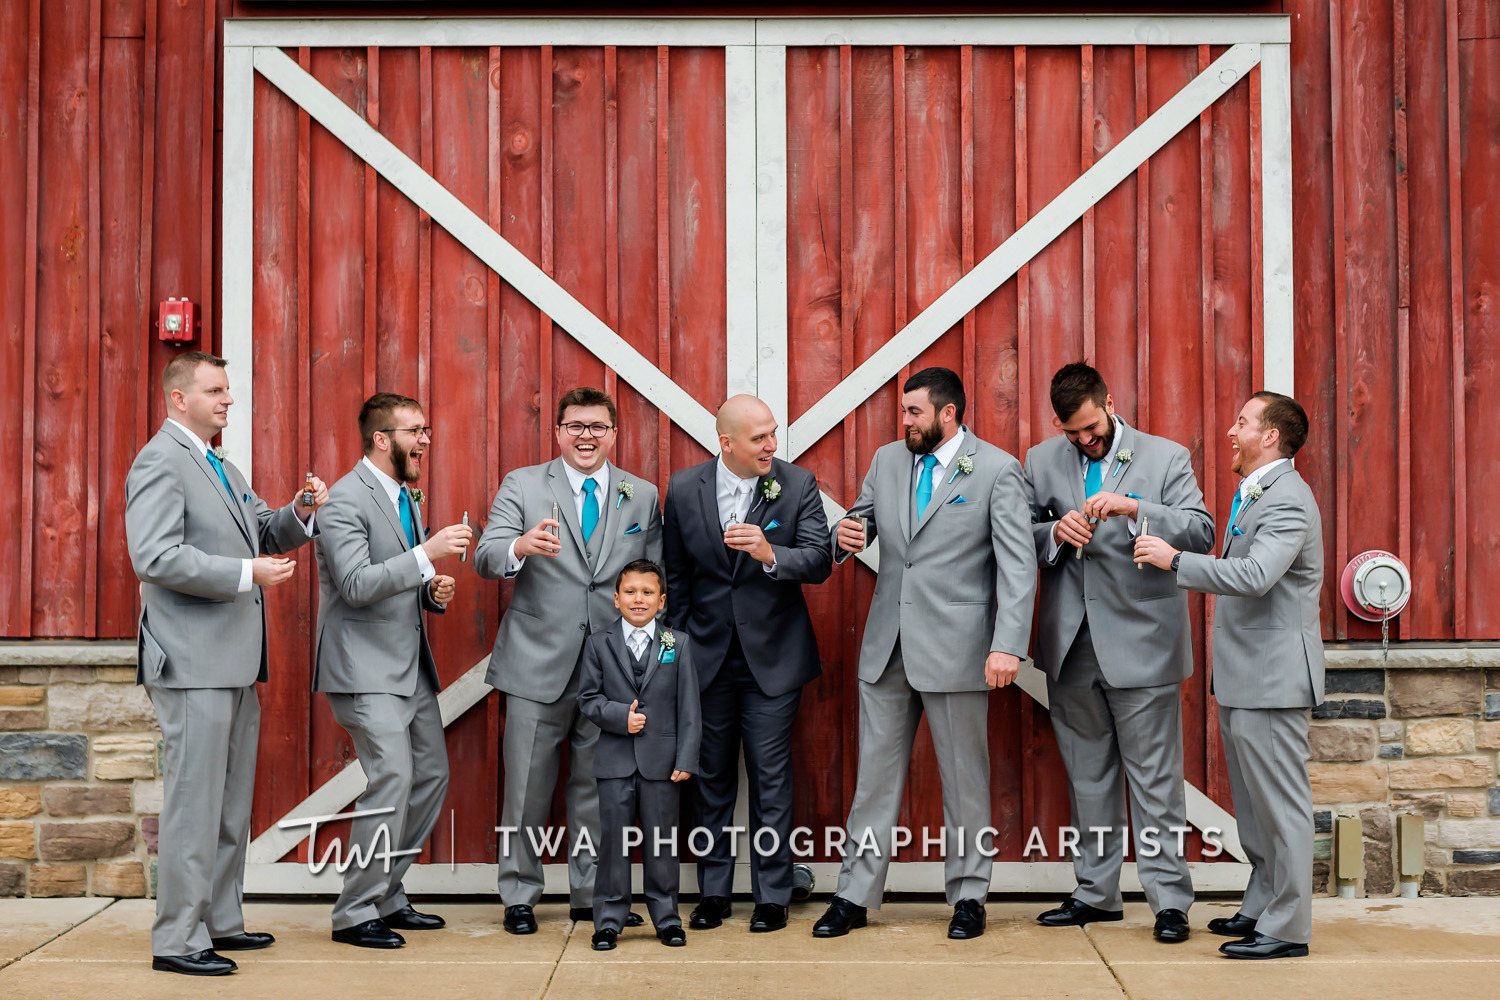 Chicago-Wedding-Photographer-TWA-Photographic-Artists-County-Line-Orchard_Bomba_Purcell_MiC_DR-0191